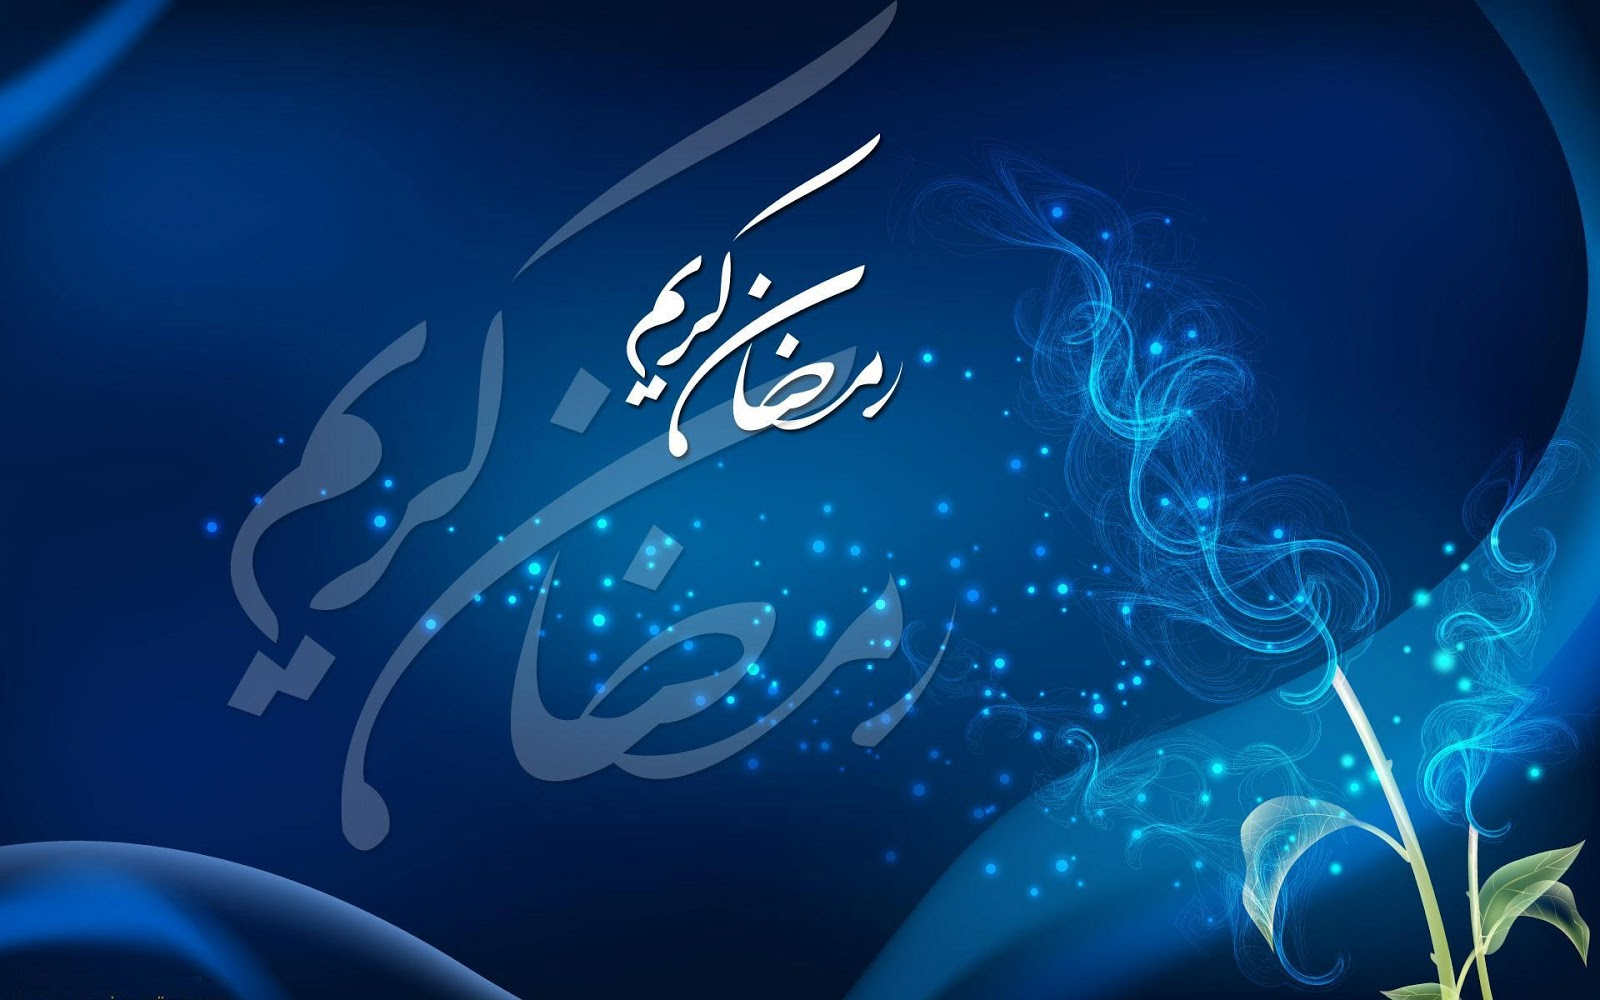 Ramadan Kareem Wallpapers - Wallpaper Background